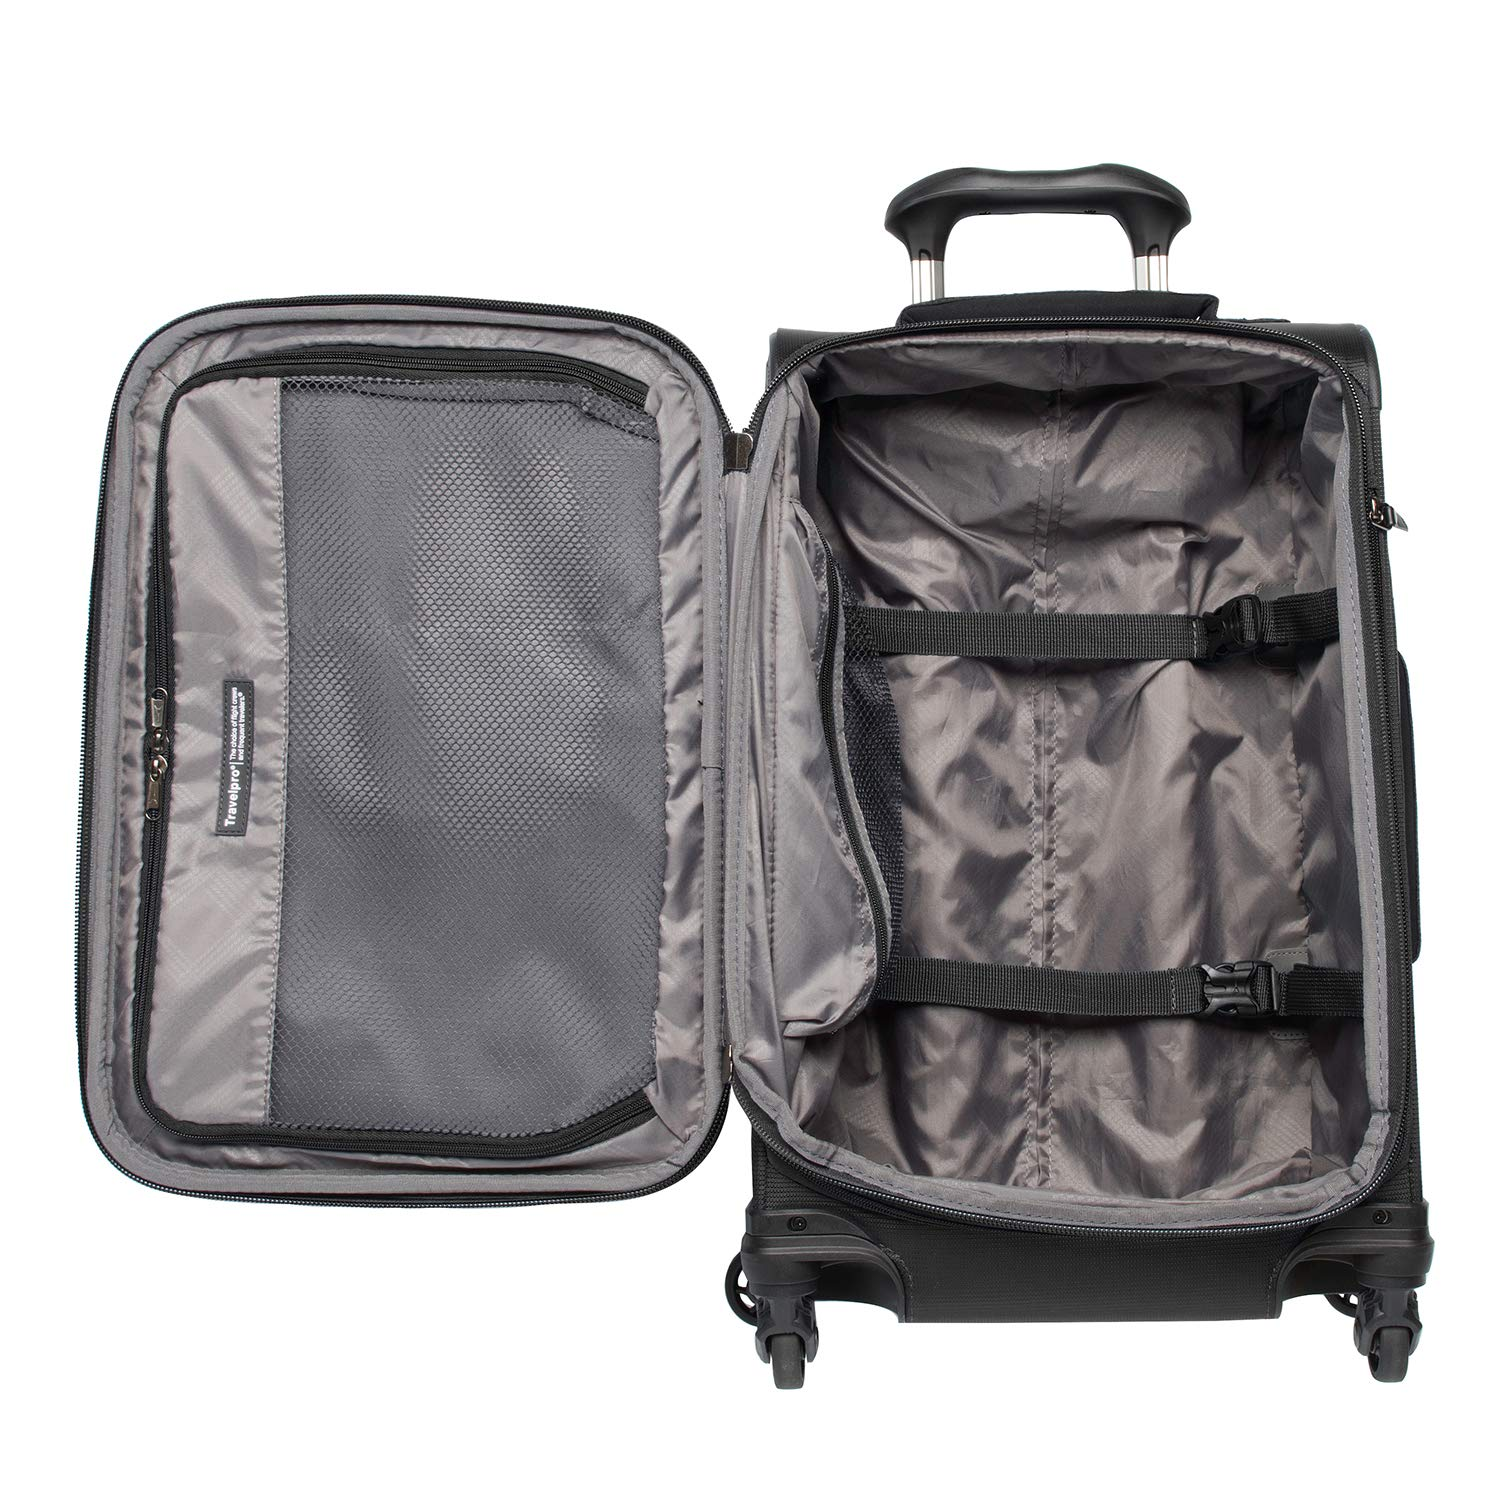 Travelpro Maxlite 4 Expandable 21 Inch Spinner Suitcase, Black by Travelpro (Image #5)